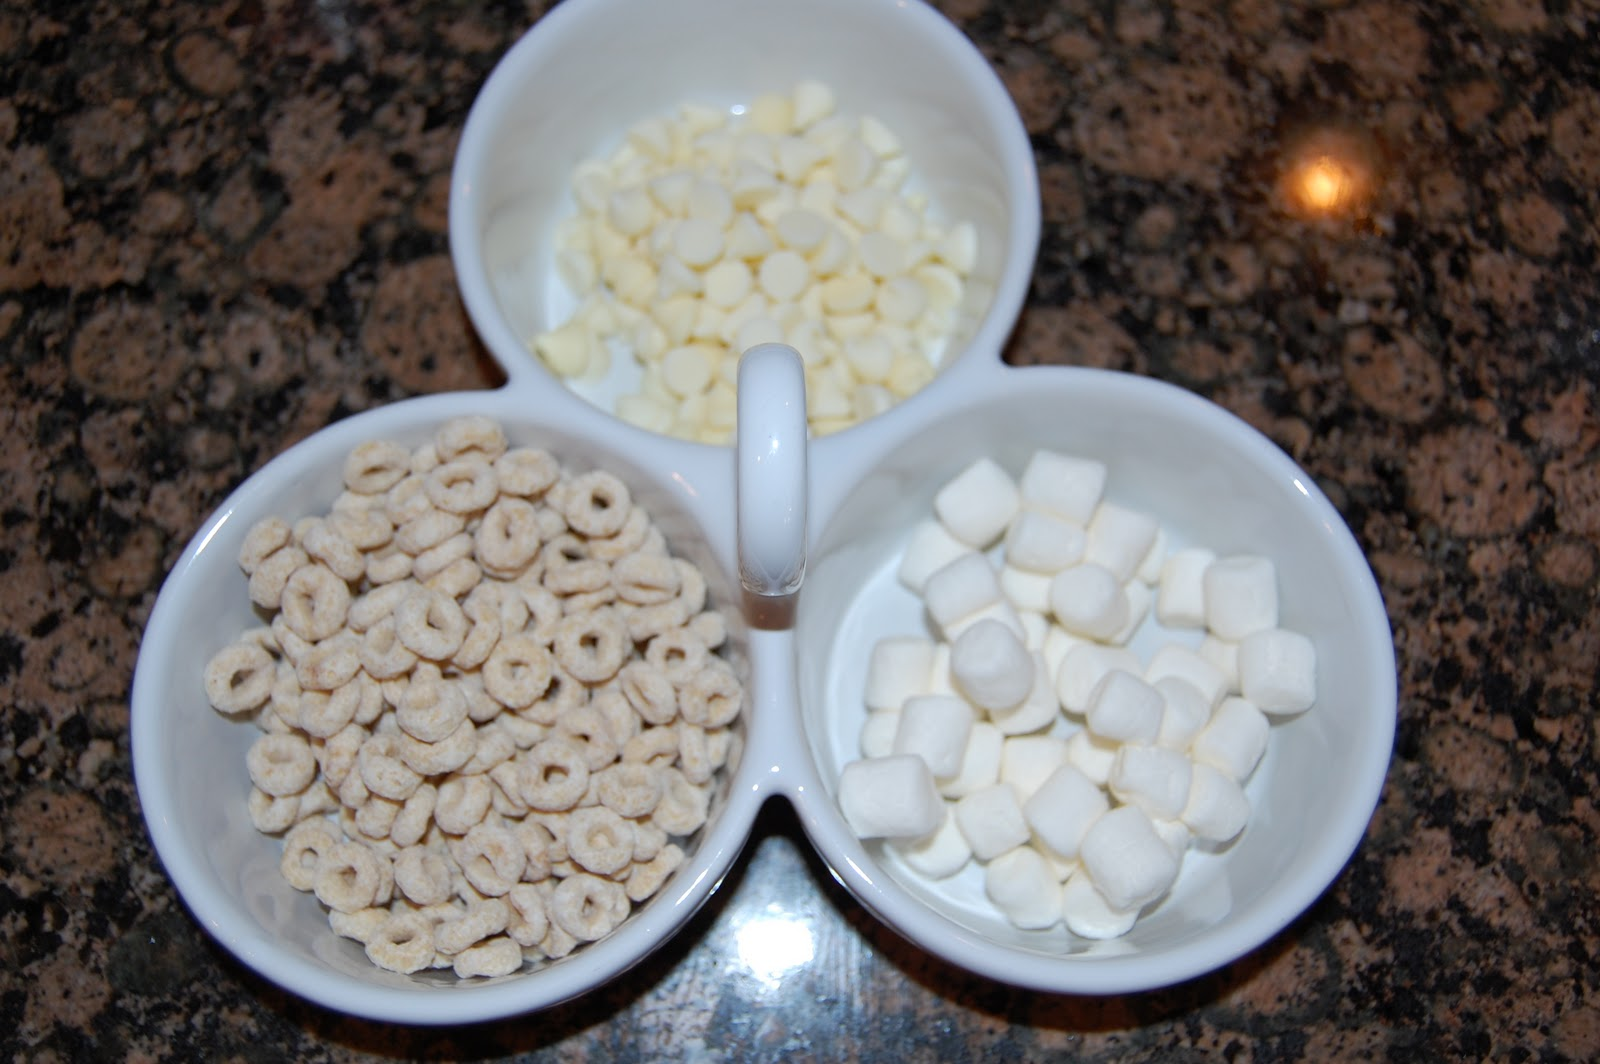 Winter White Snack Mix From The Land Of Pleasant Living Up I Love Using My Little Dish Crate And Barrel For Snacks Like This It Makes Clean So Easy Guy Also An Appearance On Taco Night